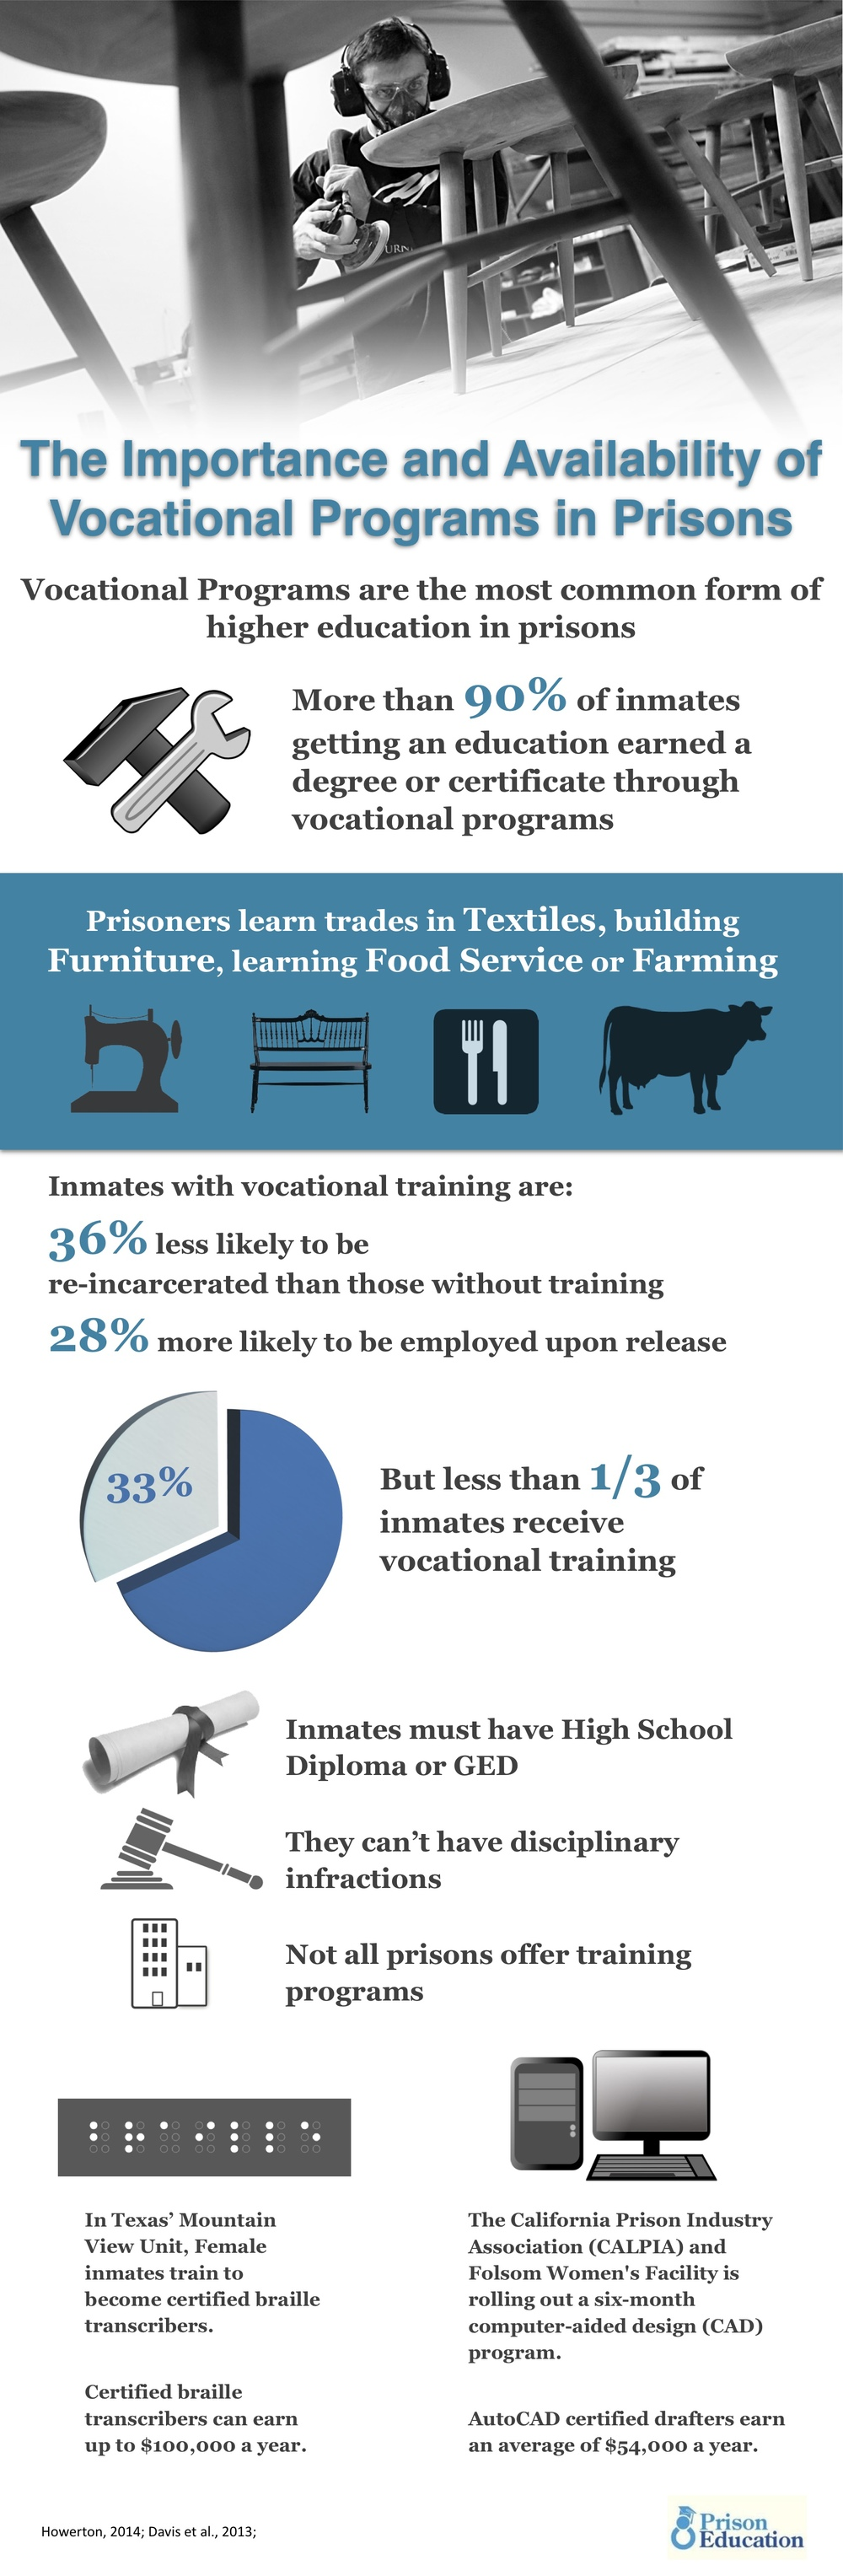 Vocational training is the most common higher education in prisons.